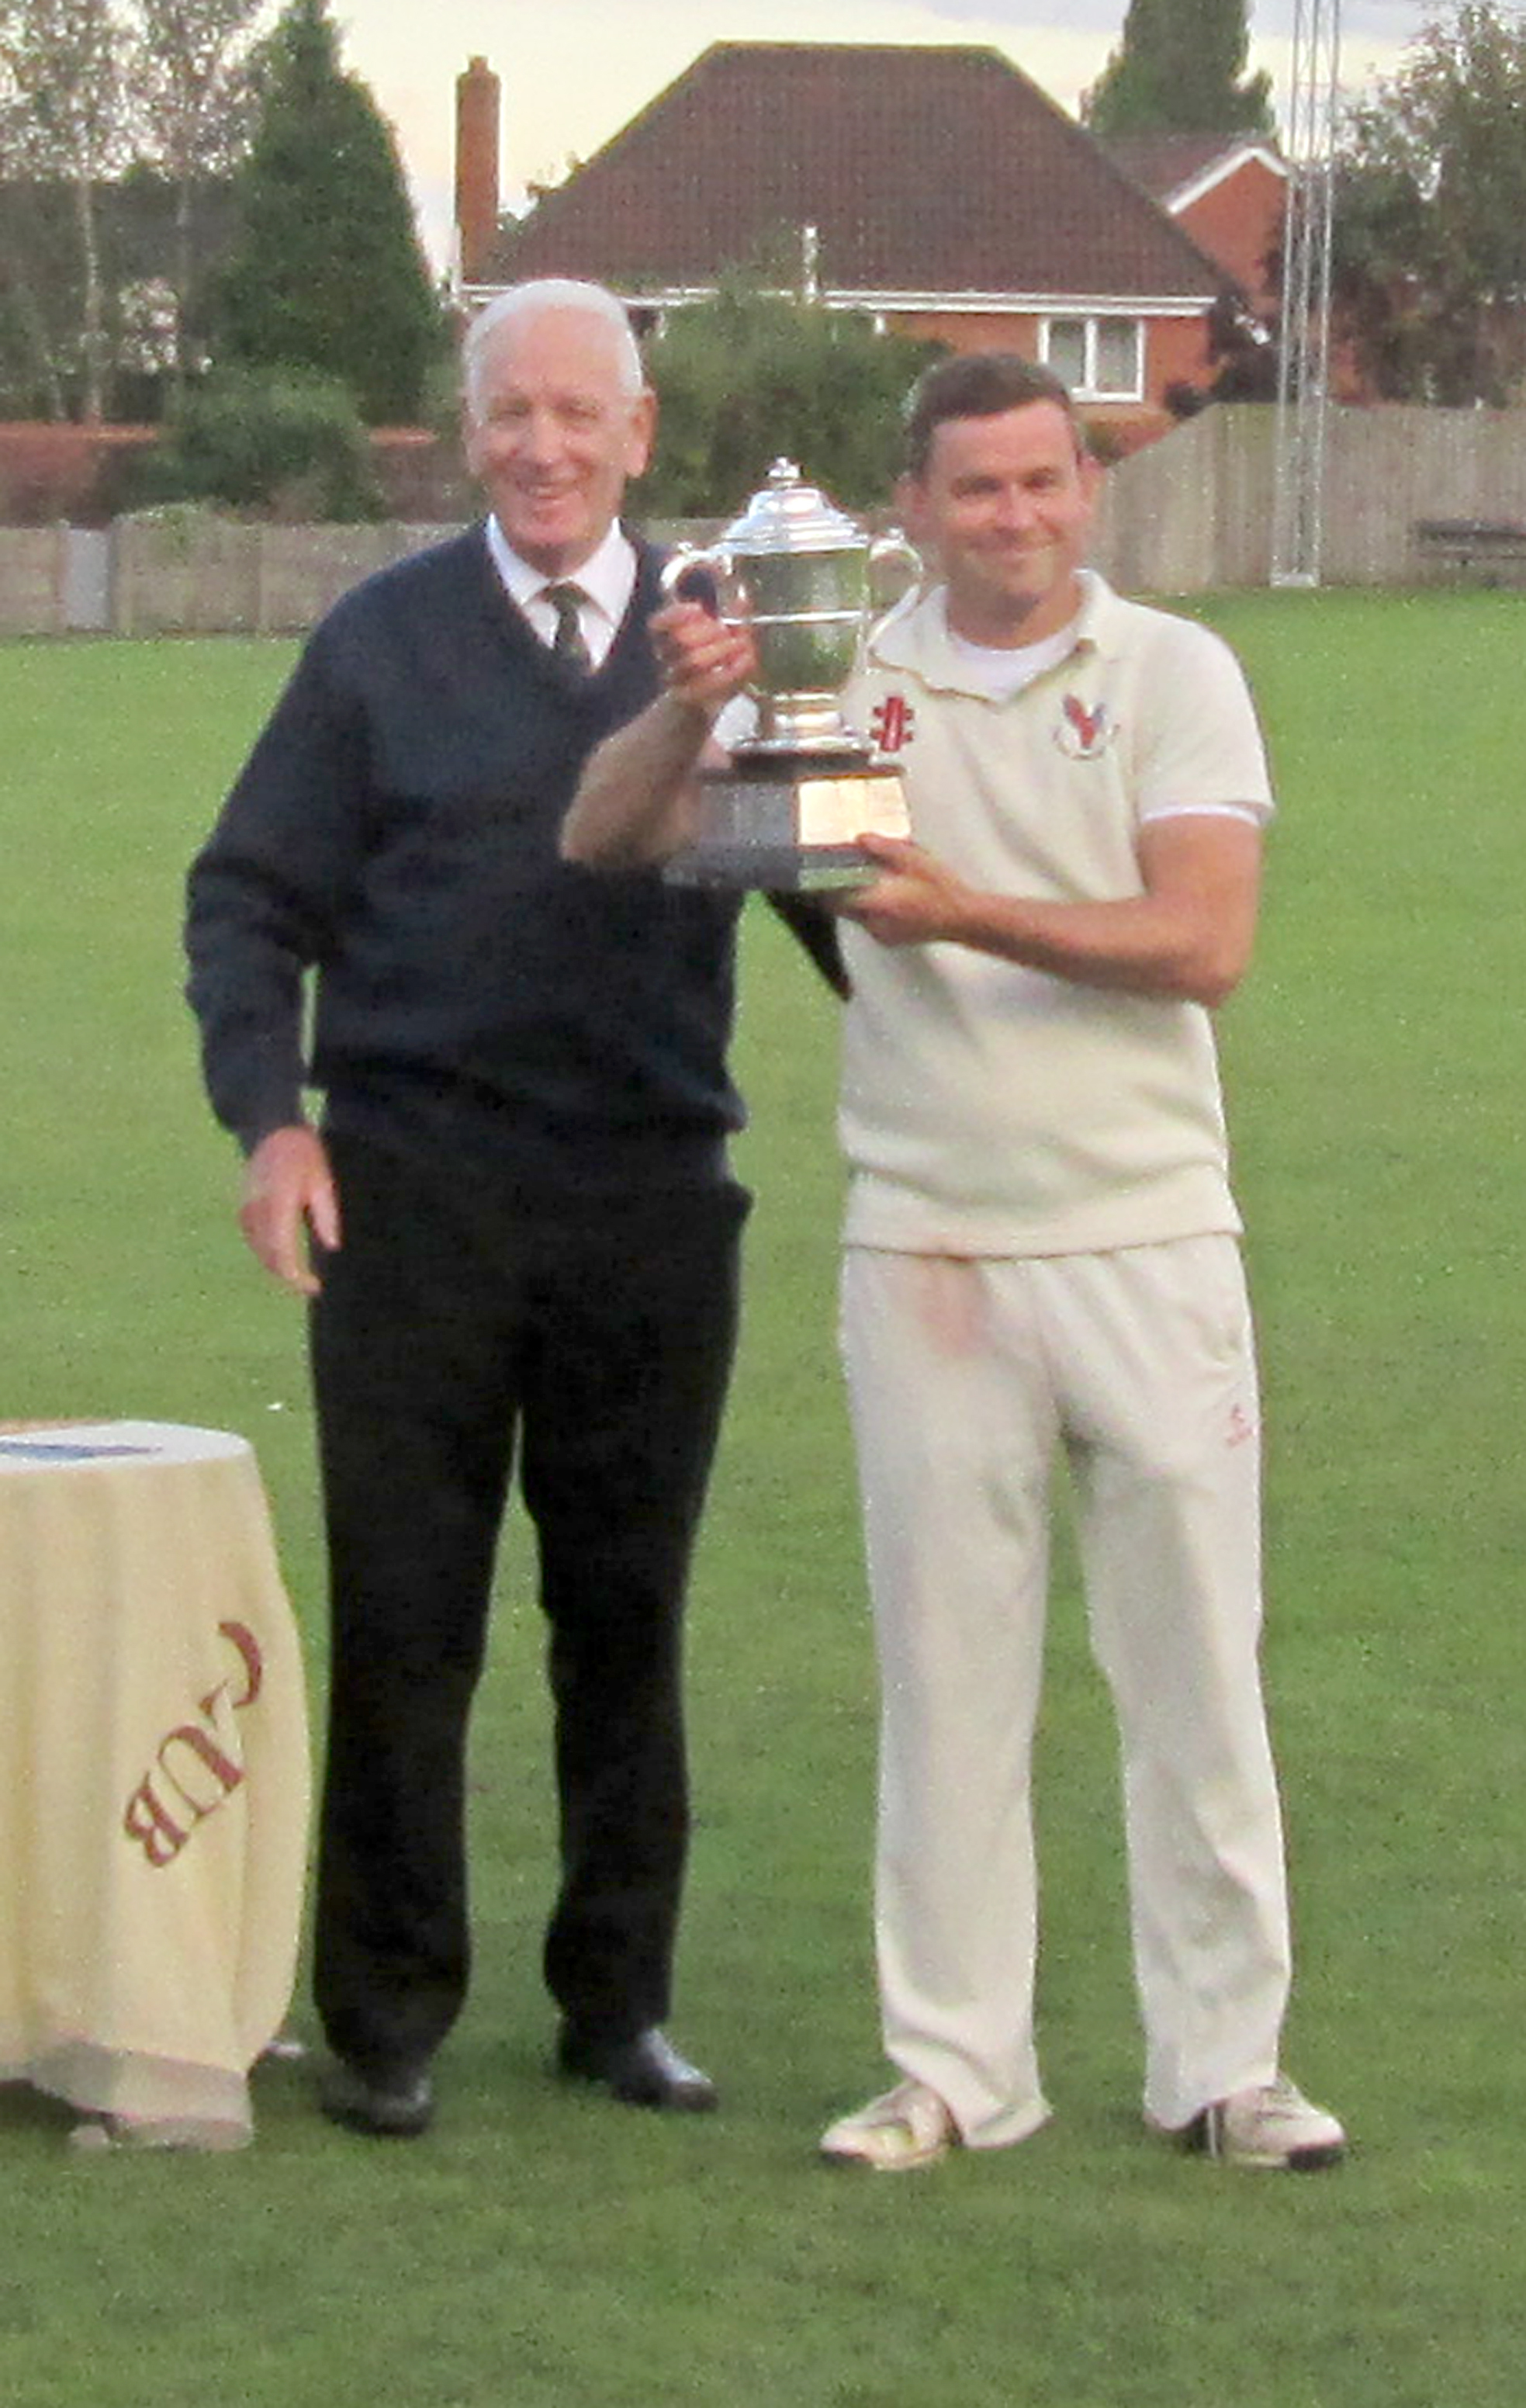 Cricket Cross Cup winners 2017 Clifton captain Gareth Cross.jpg